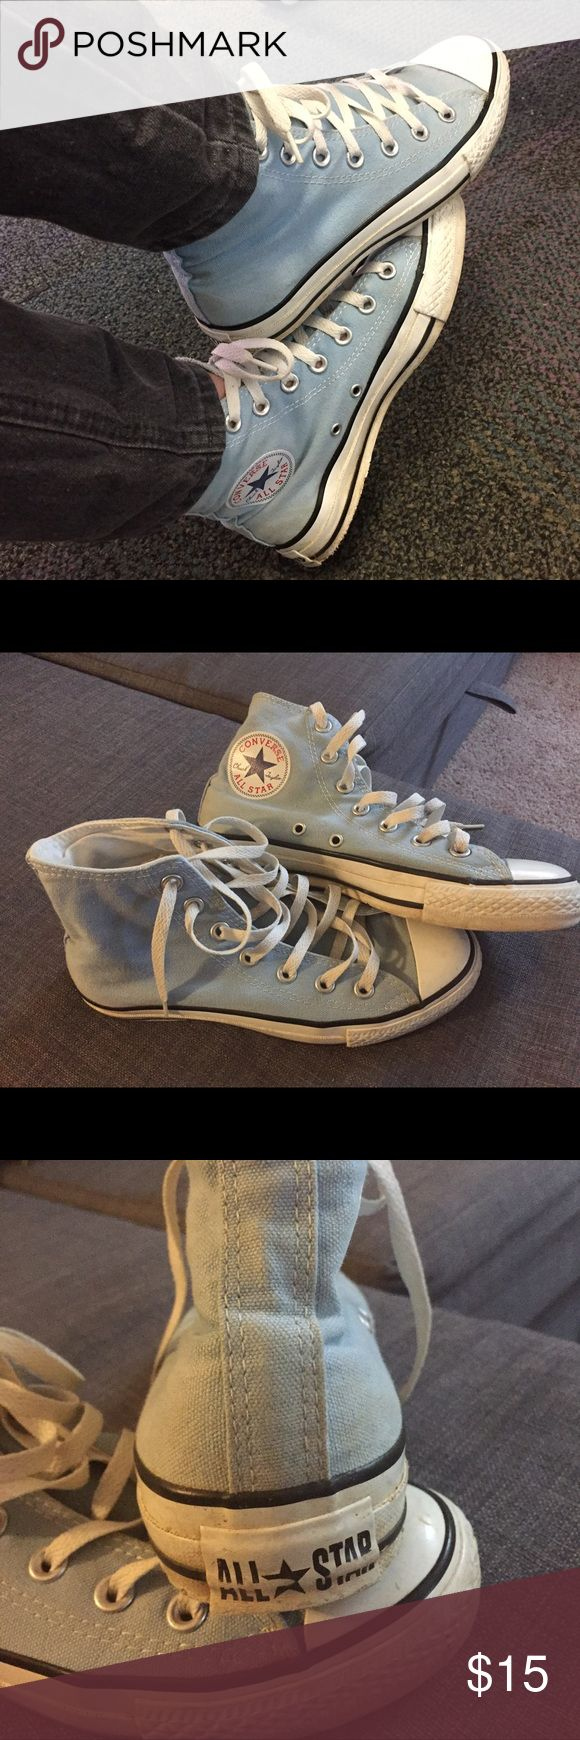 Hi top sky blue converse These converse are well worn and could use a wash but still have a lot of wear left in them. Light blue color goes with everything, wish I could still wear them but just too small. Size 5 men/7 women Converse Shoes Sneakers